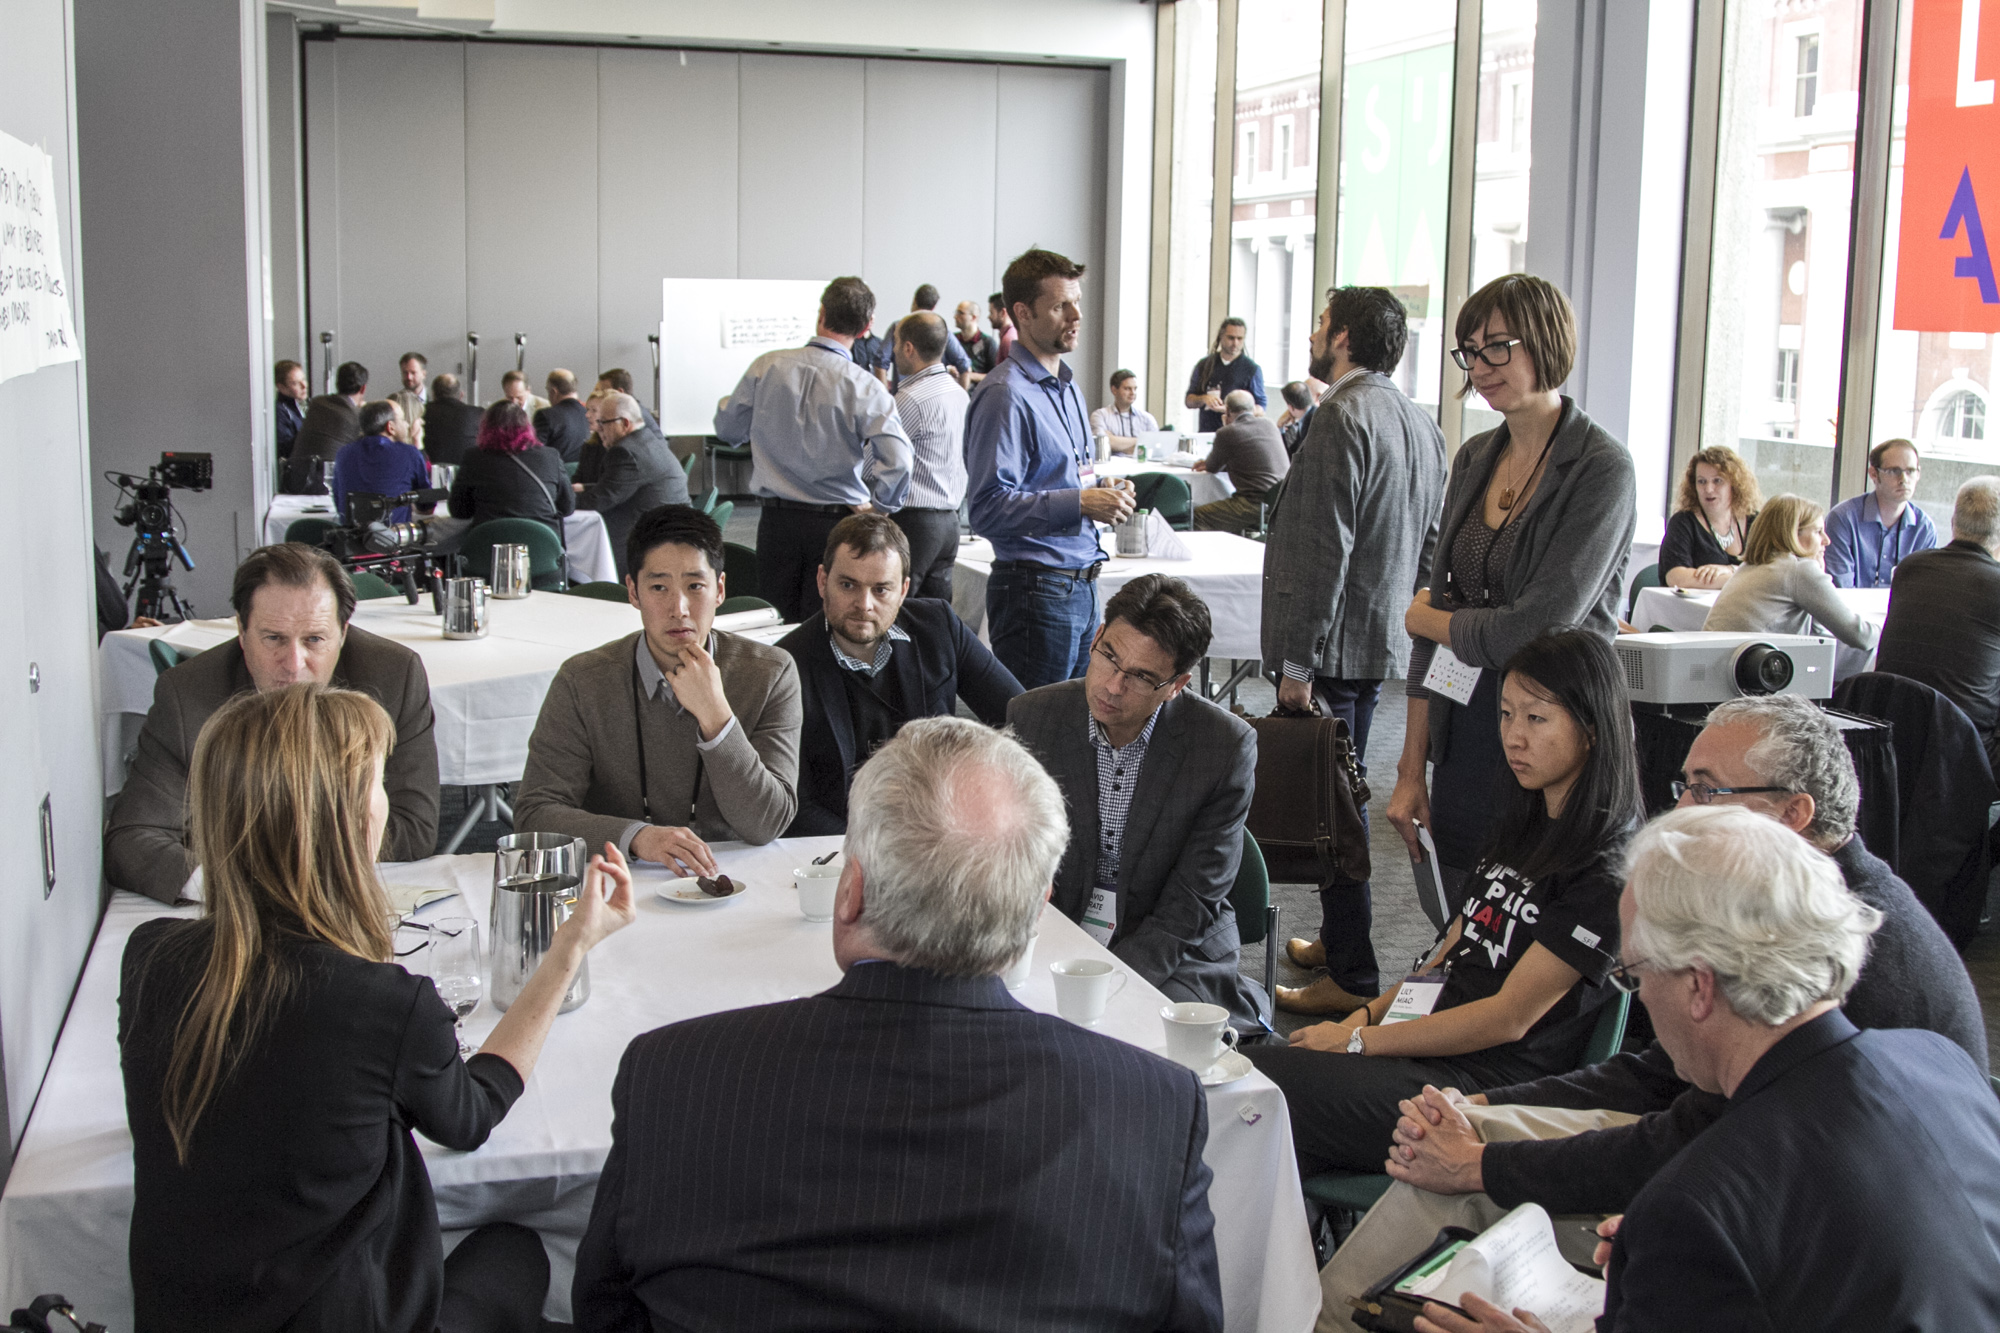 Open Space discussions during Data Leadership Summit 2014 | Photo by Mark Kinskofer